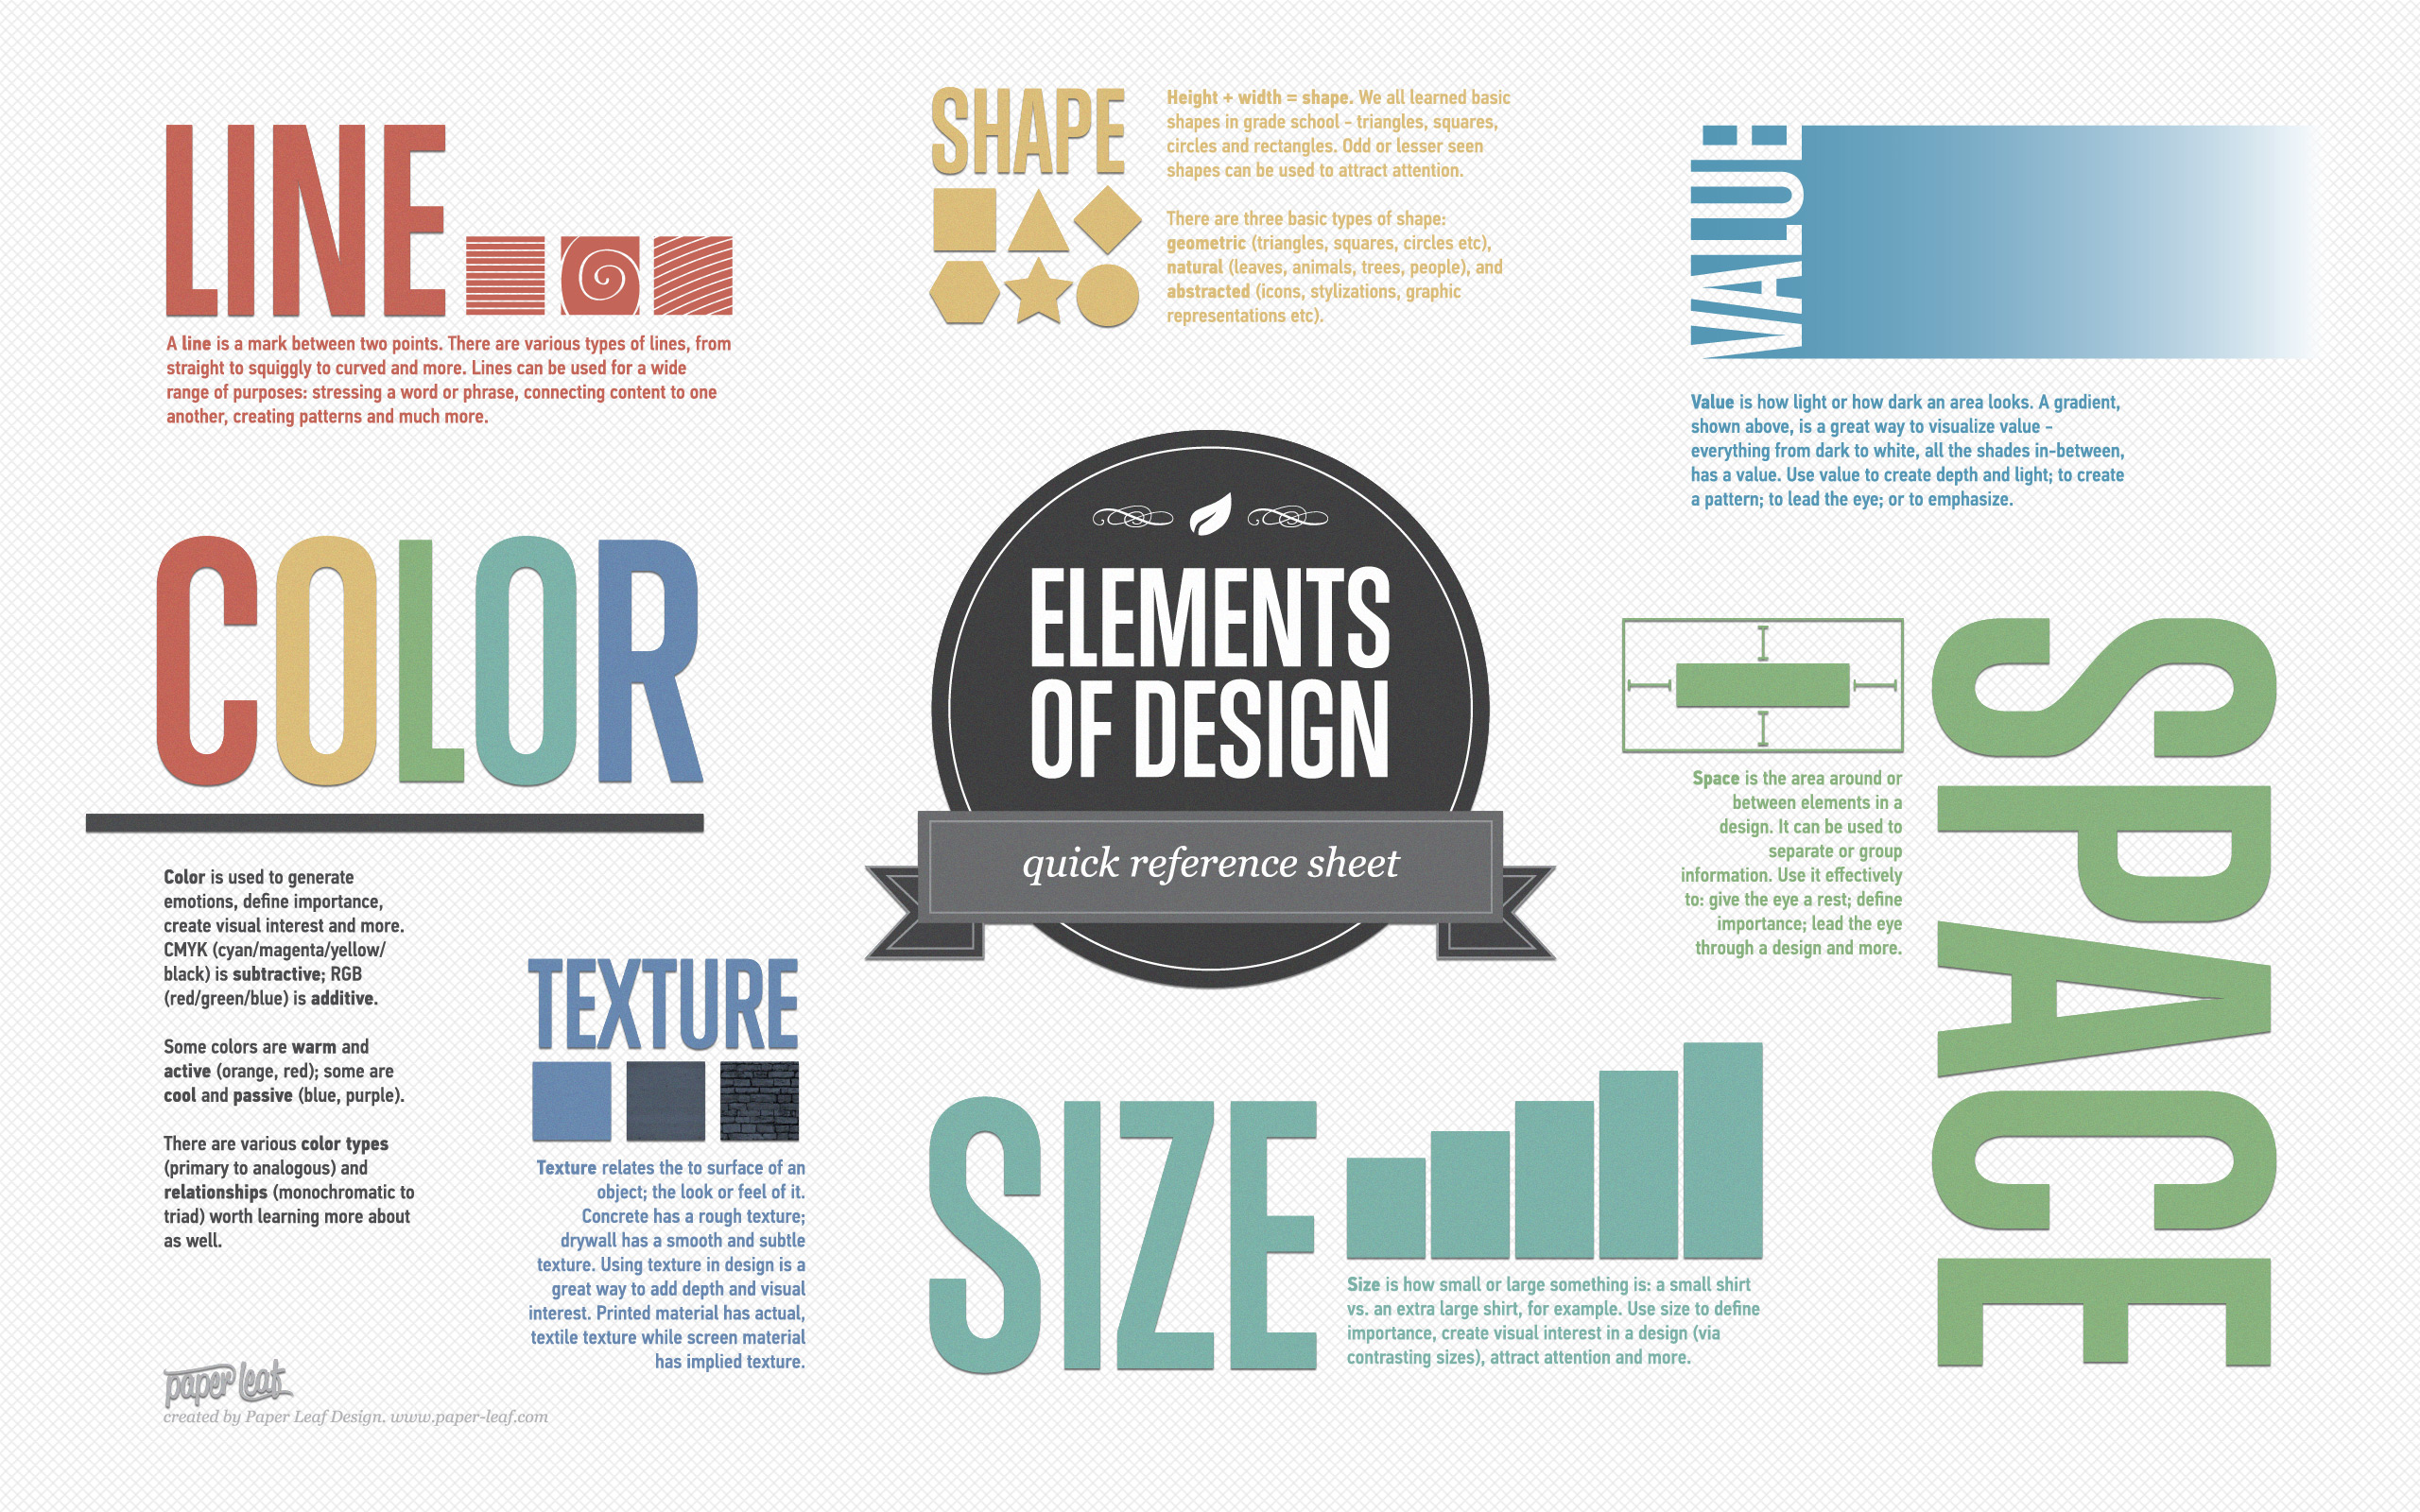 19 Good Elements Of Graphic Design Images